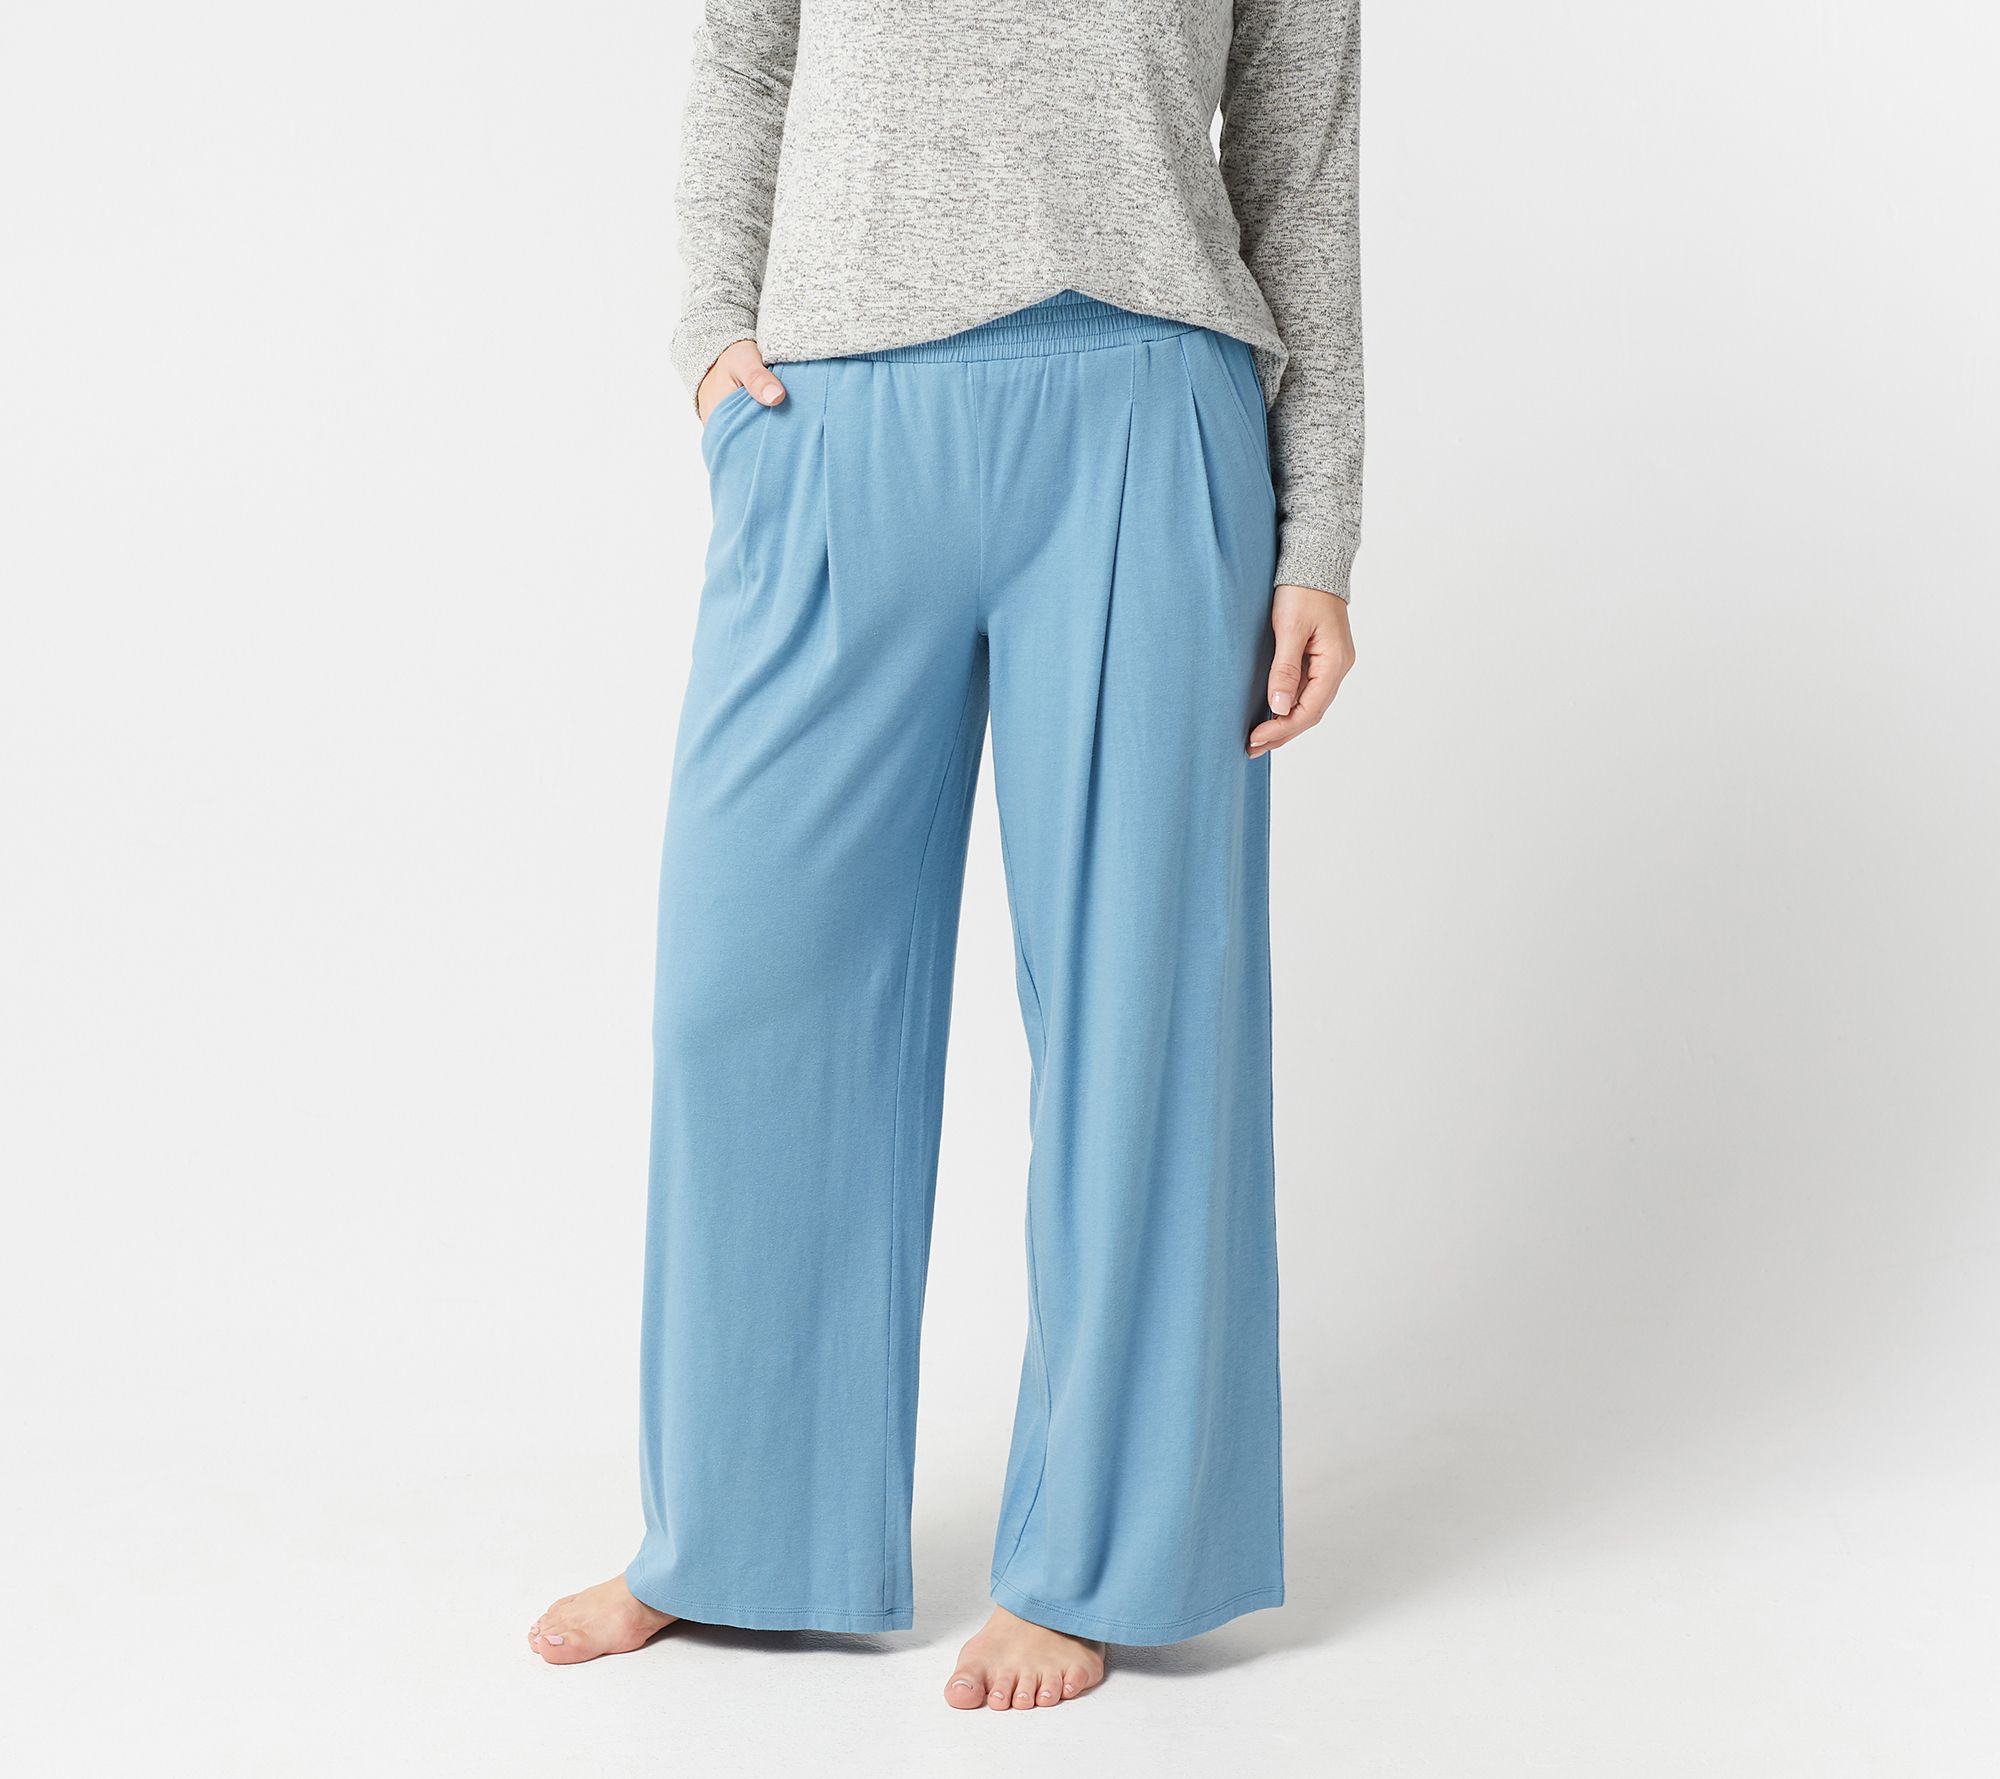 2e20fb3f0d2 AnyBody Loungewear Cozy Knit Wide-Leg Pants - Page 1 — QVC.com